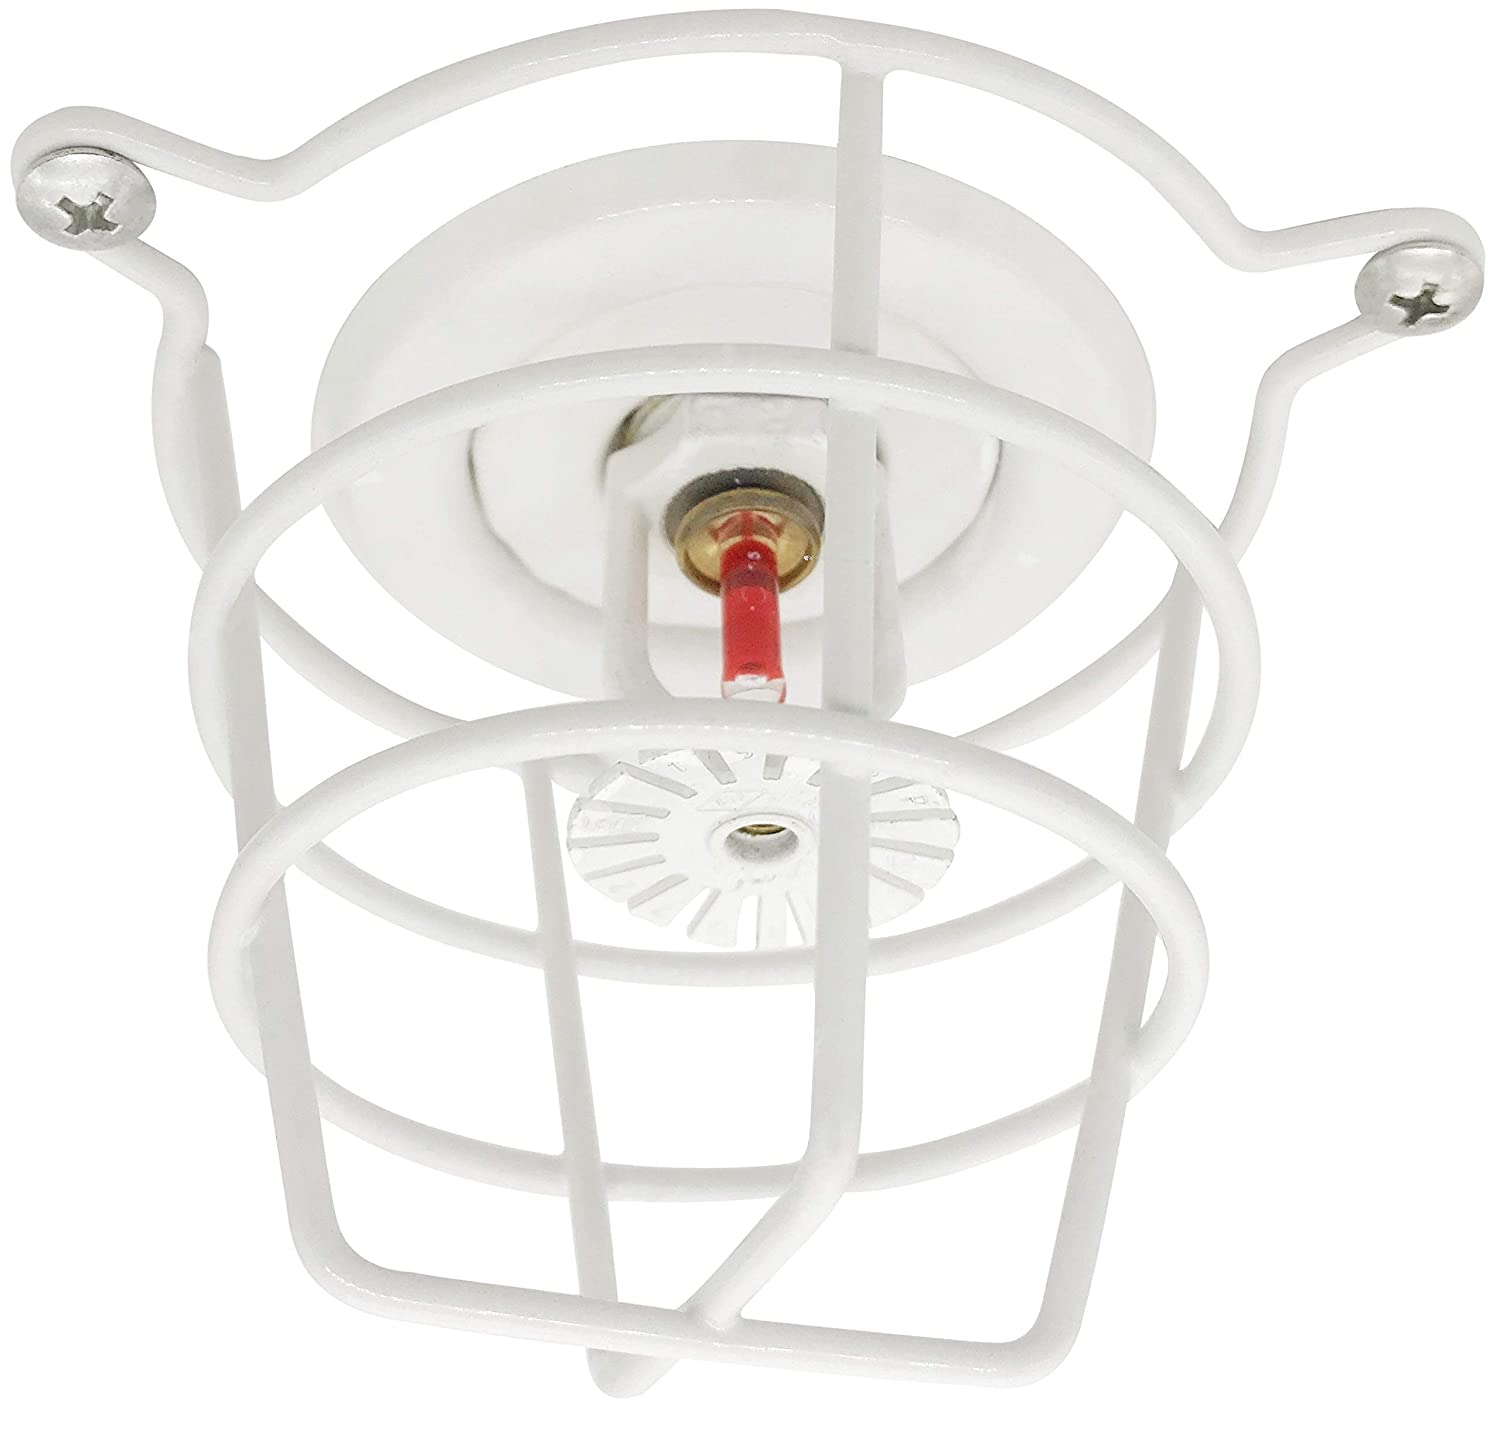 TunaMax White Fire Sprinkler Head Guard for Both 1//2 /& 3//4 Sprinkler Head for Protecting Flush Mount /& Side Wall /& Semi Recessed Sprinkler Head Cover 2 Pack Mounting Hardwares Included